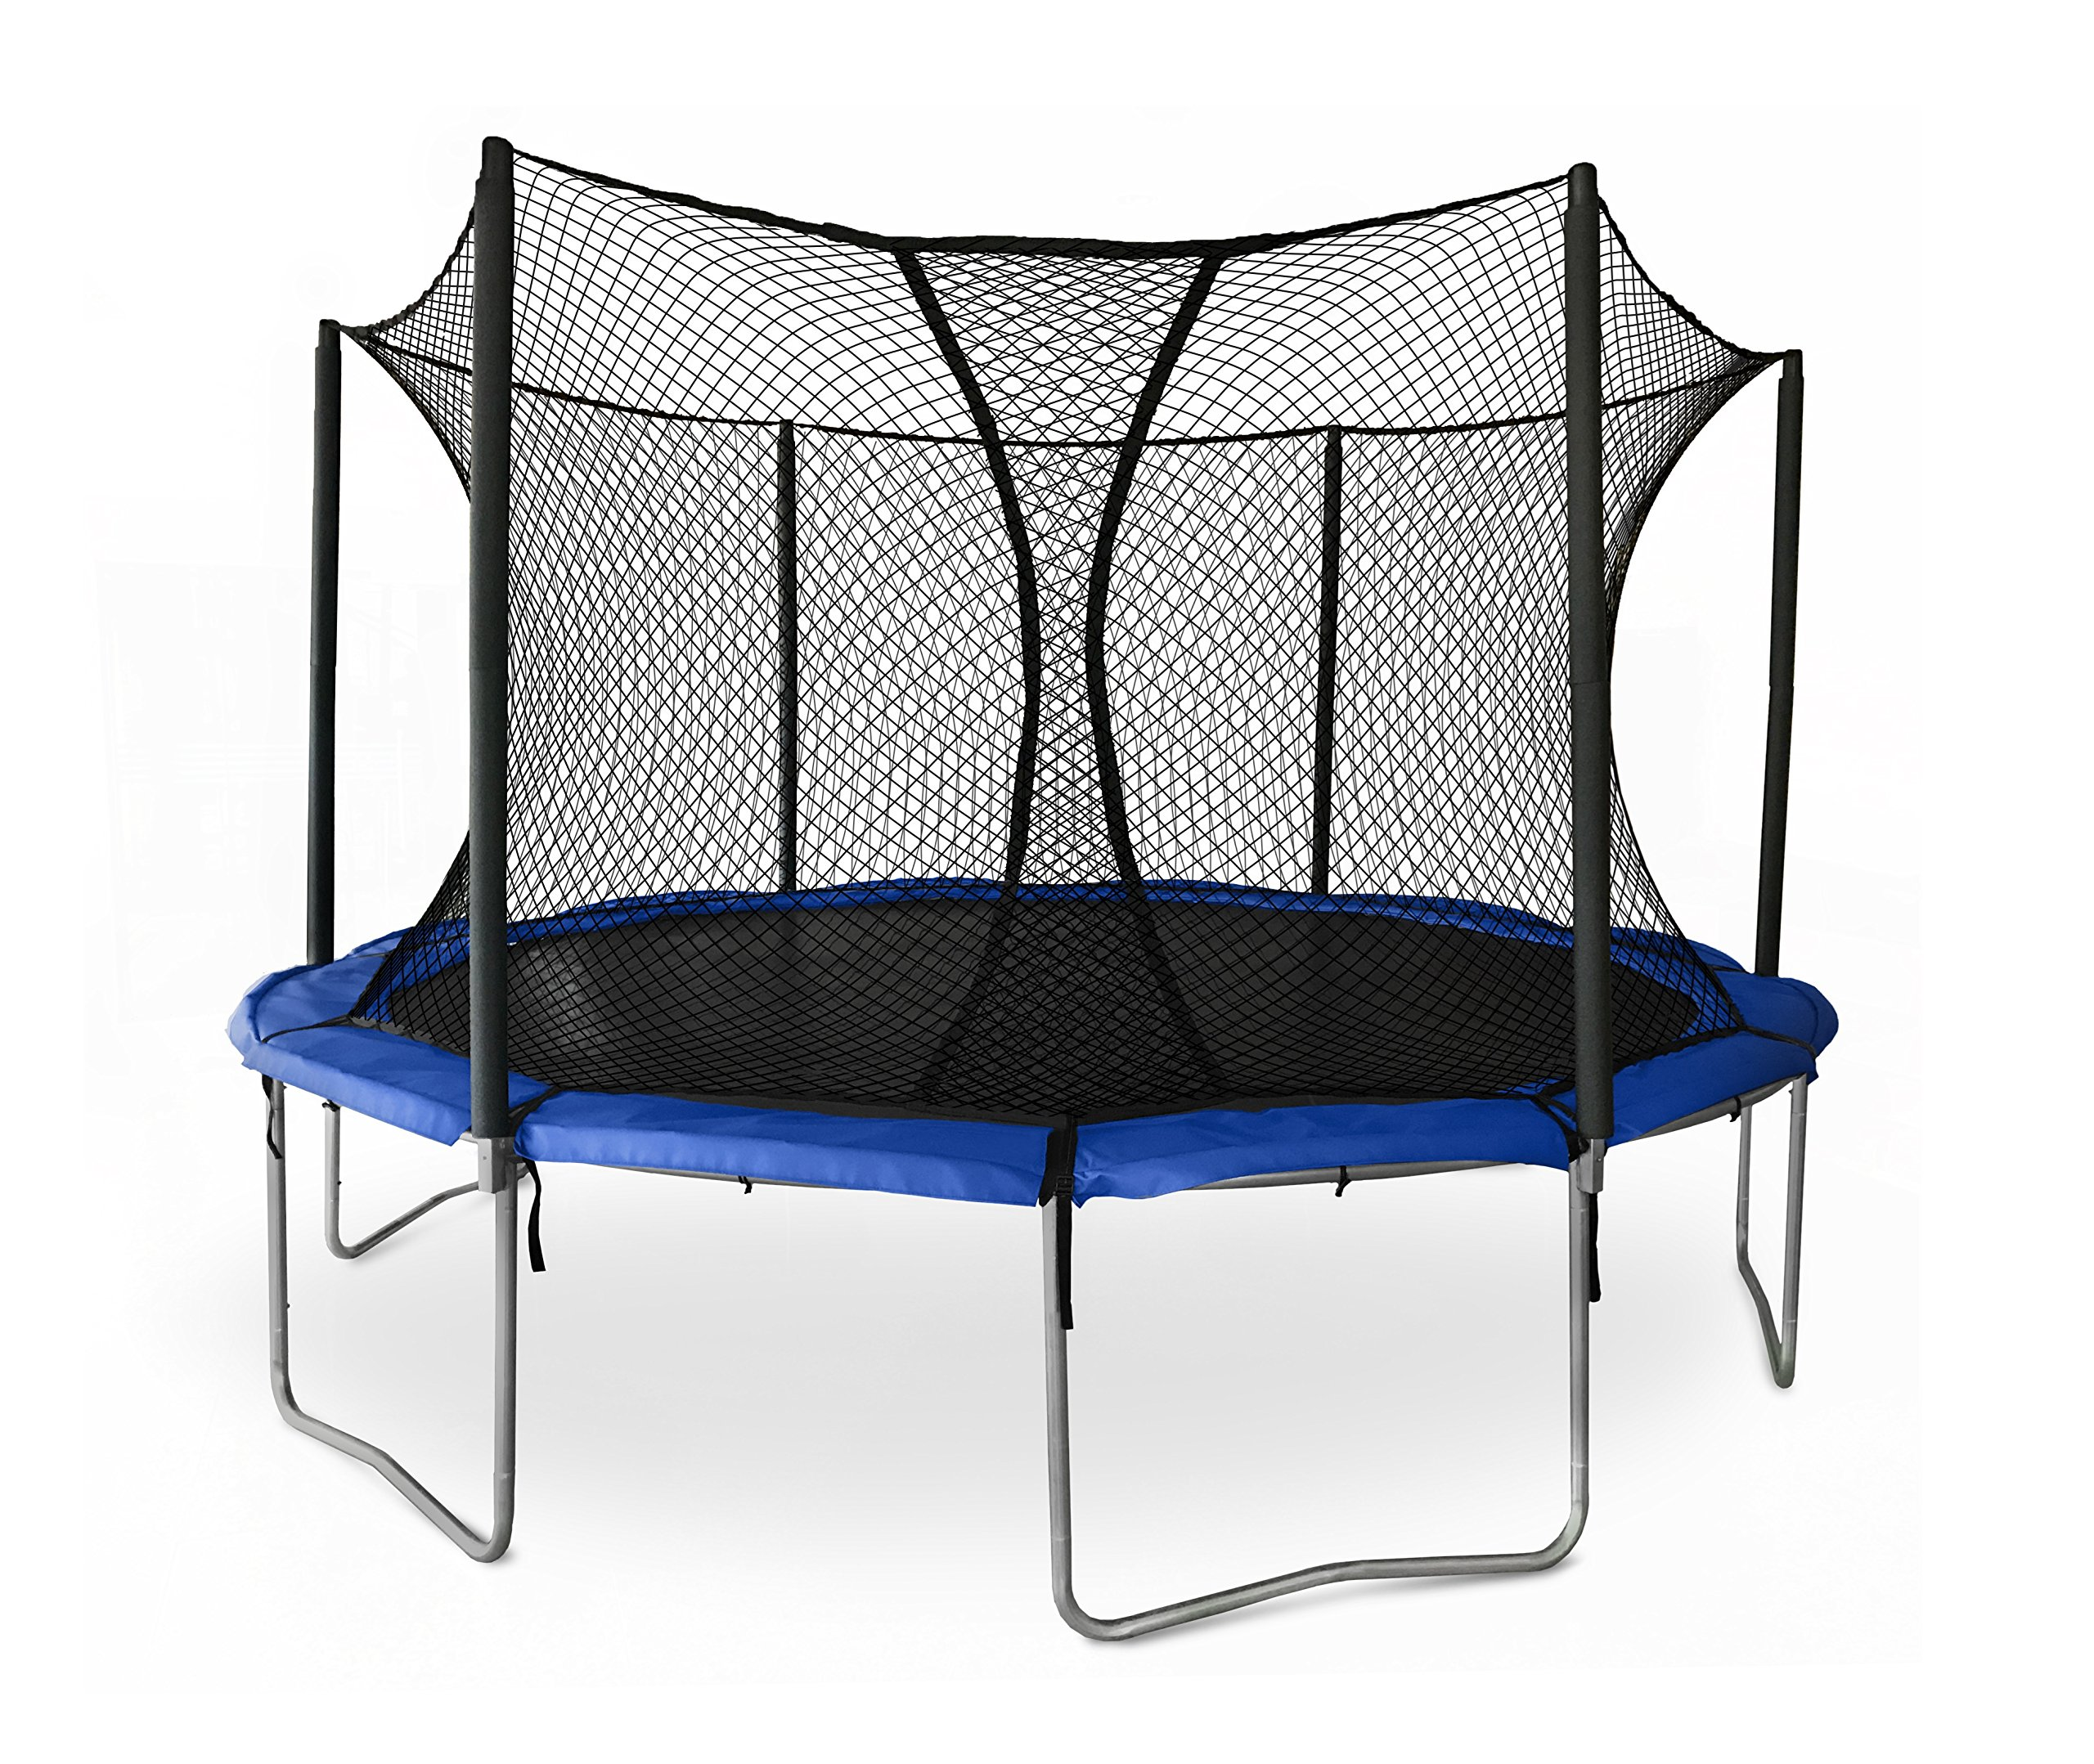 JumpSport SkyBounce ES 14' Trampoline with Enclosure | Includes Overlapping Doorway Entry & UV Resistant Pad by JumpSport